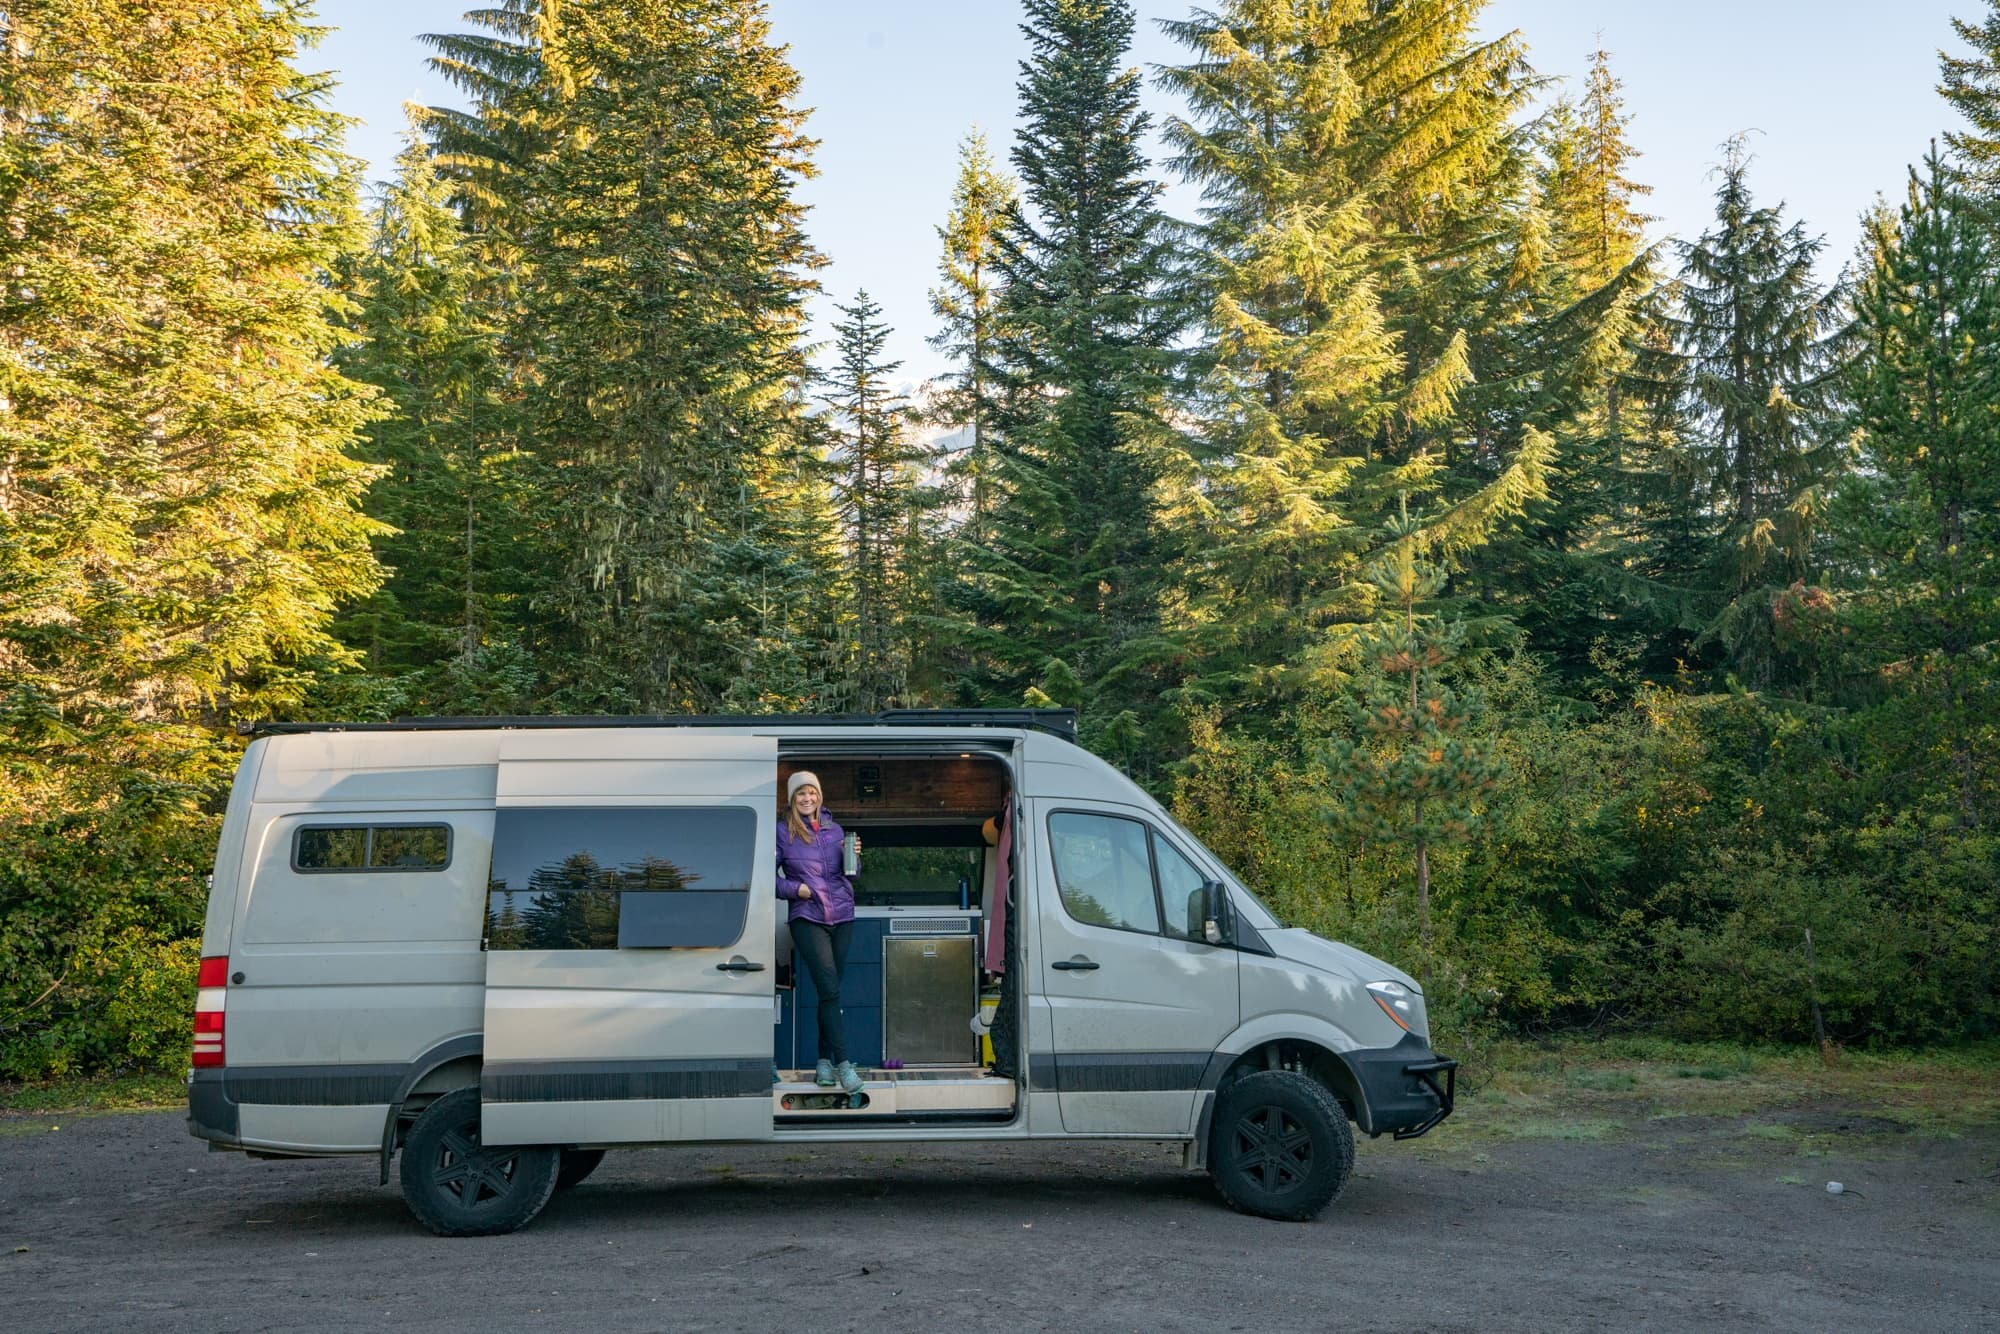 Choosing a health insurance plan for van life can be a tricky task to navigate. Learn more about where to look for health plans and what questions to ask